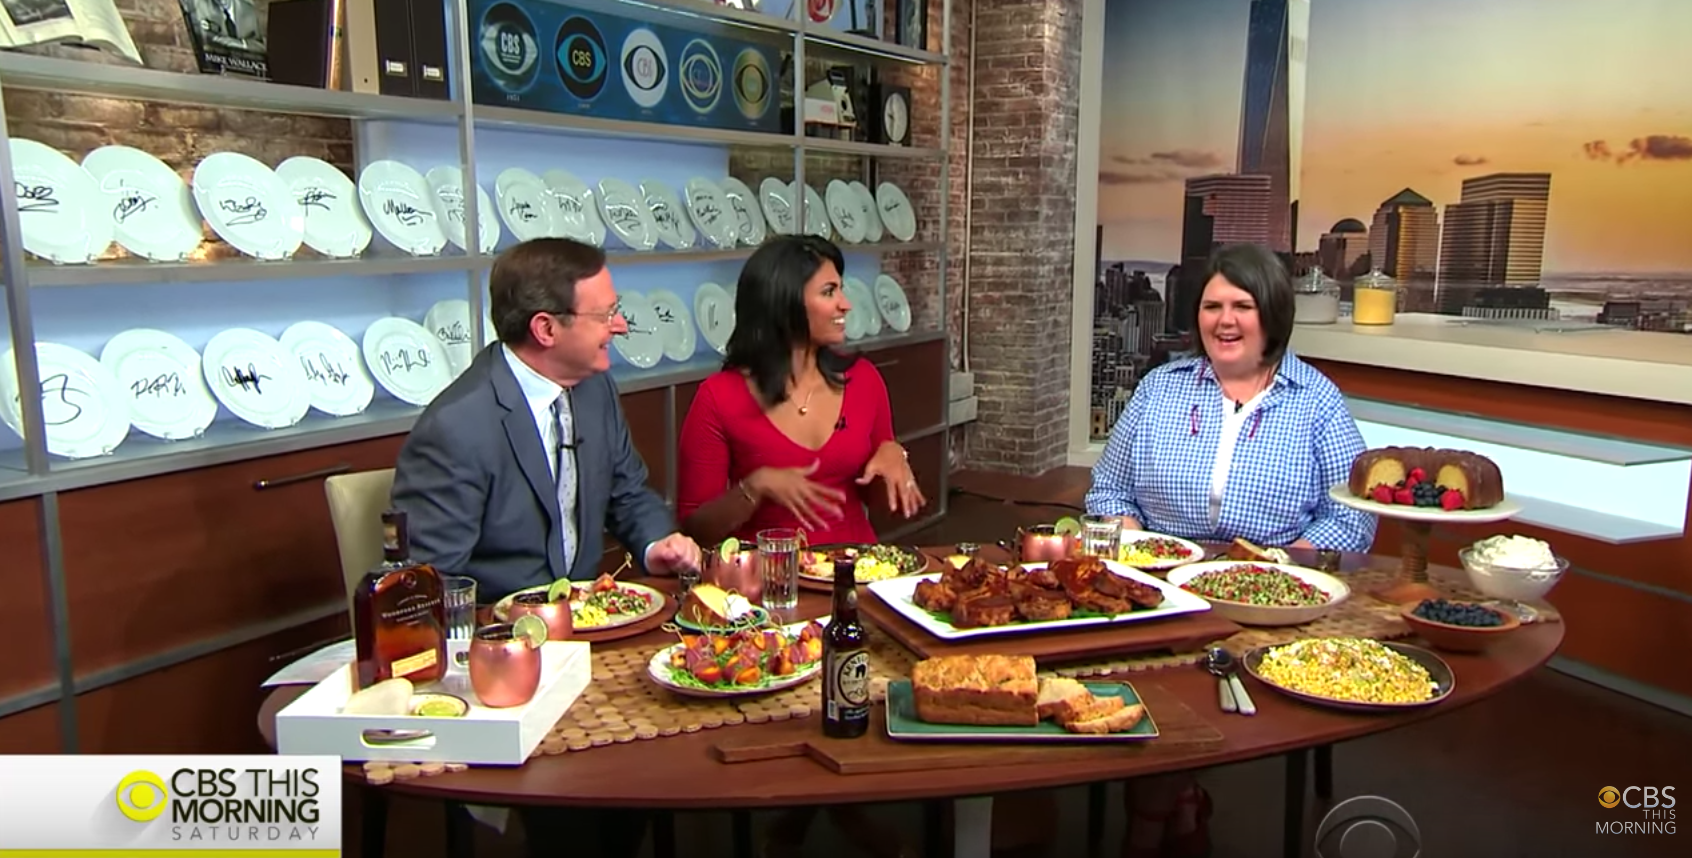 The Dish: Chef Ouita Michel  - CBS This Morning, July 2016